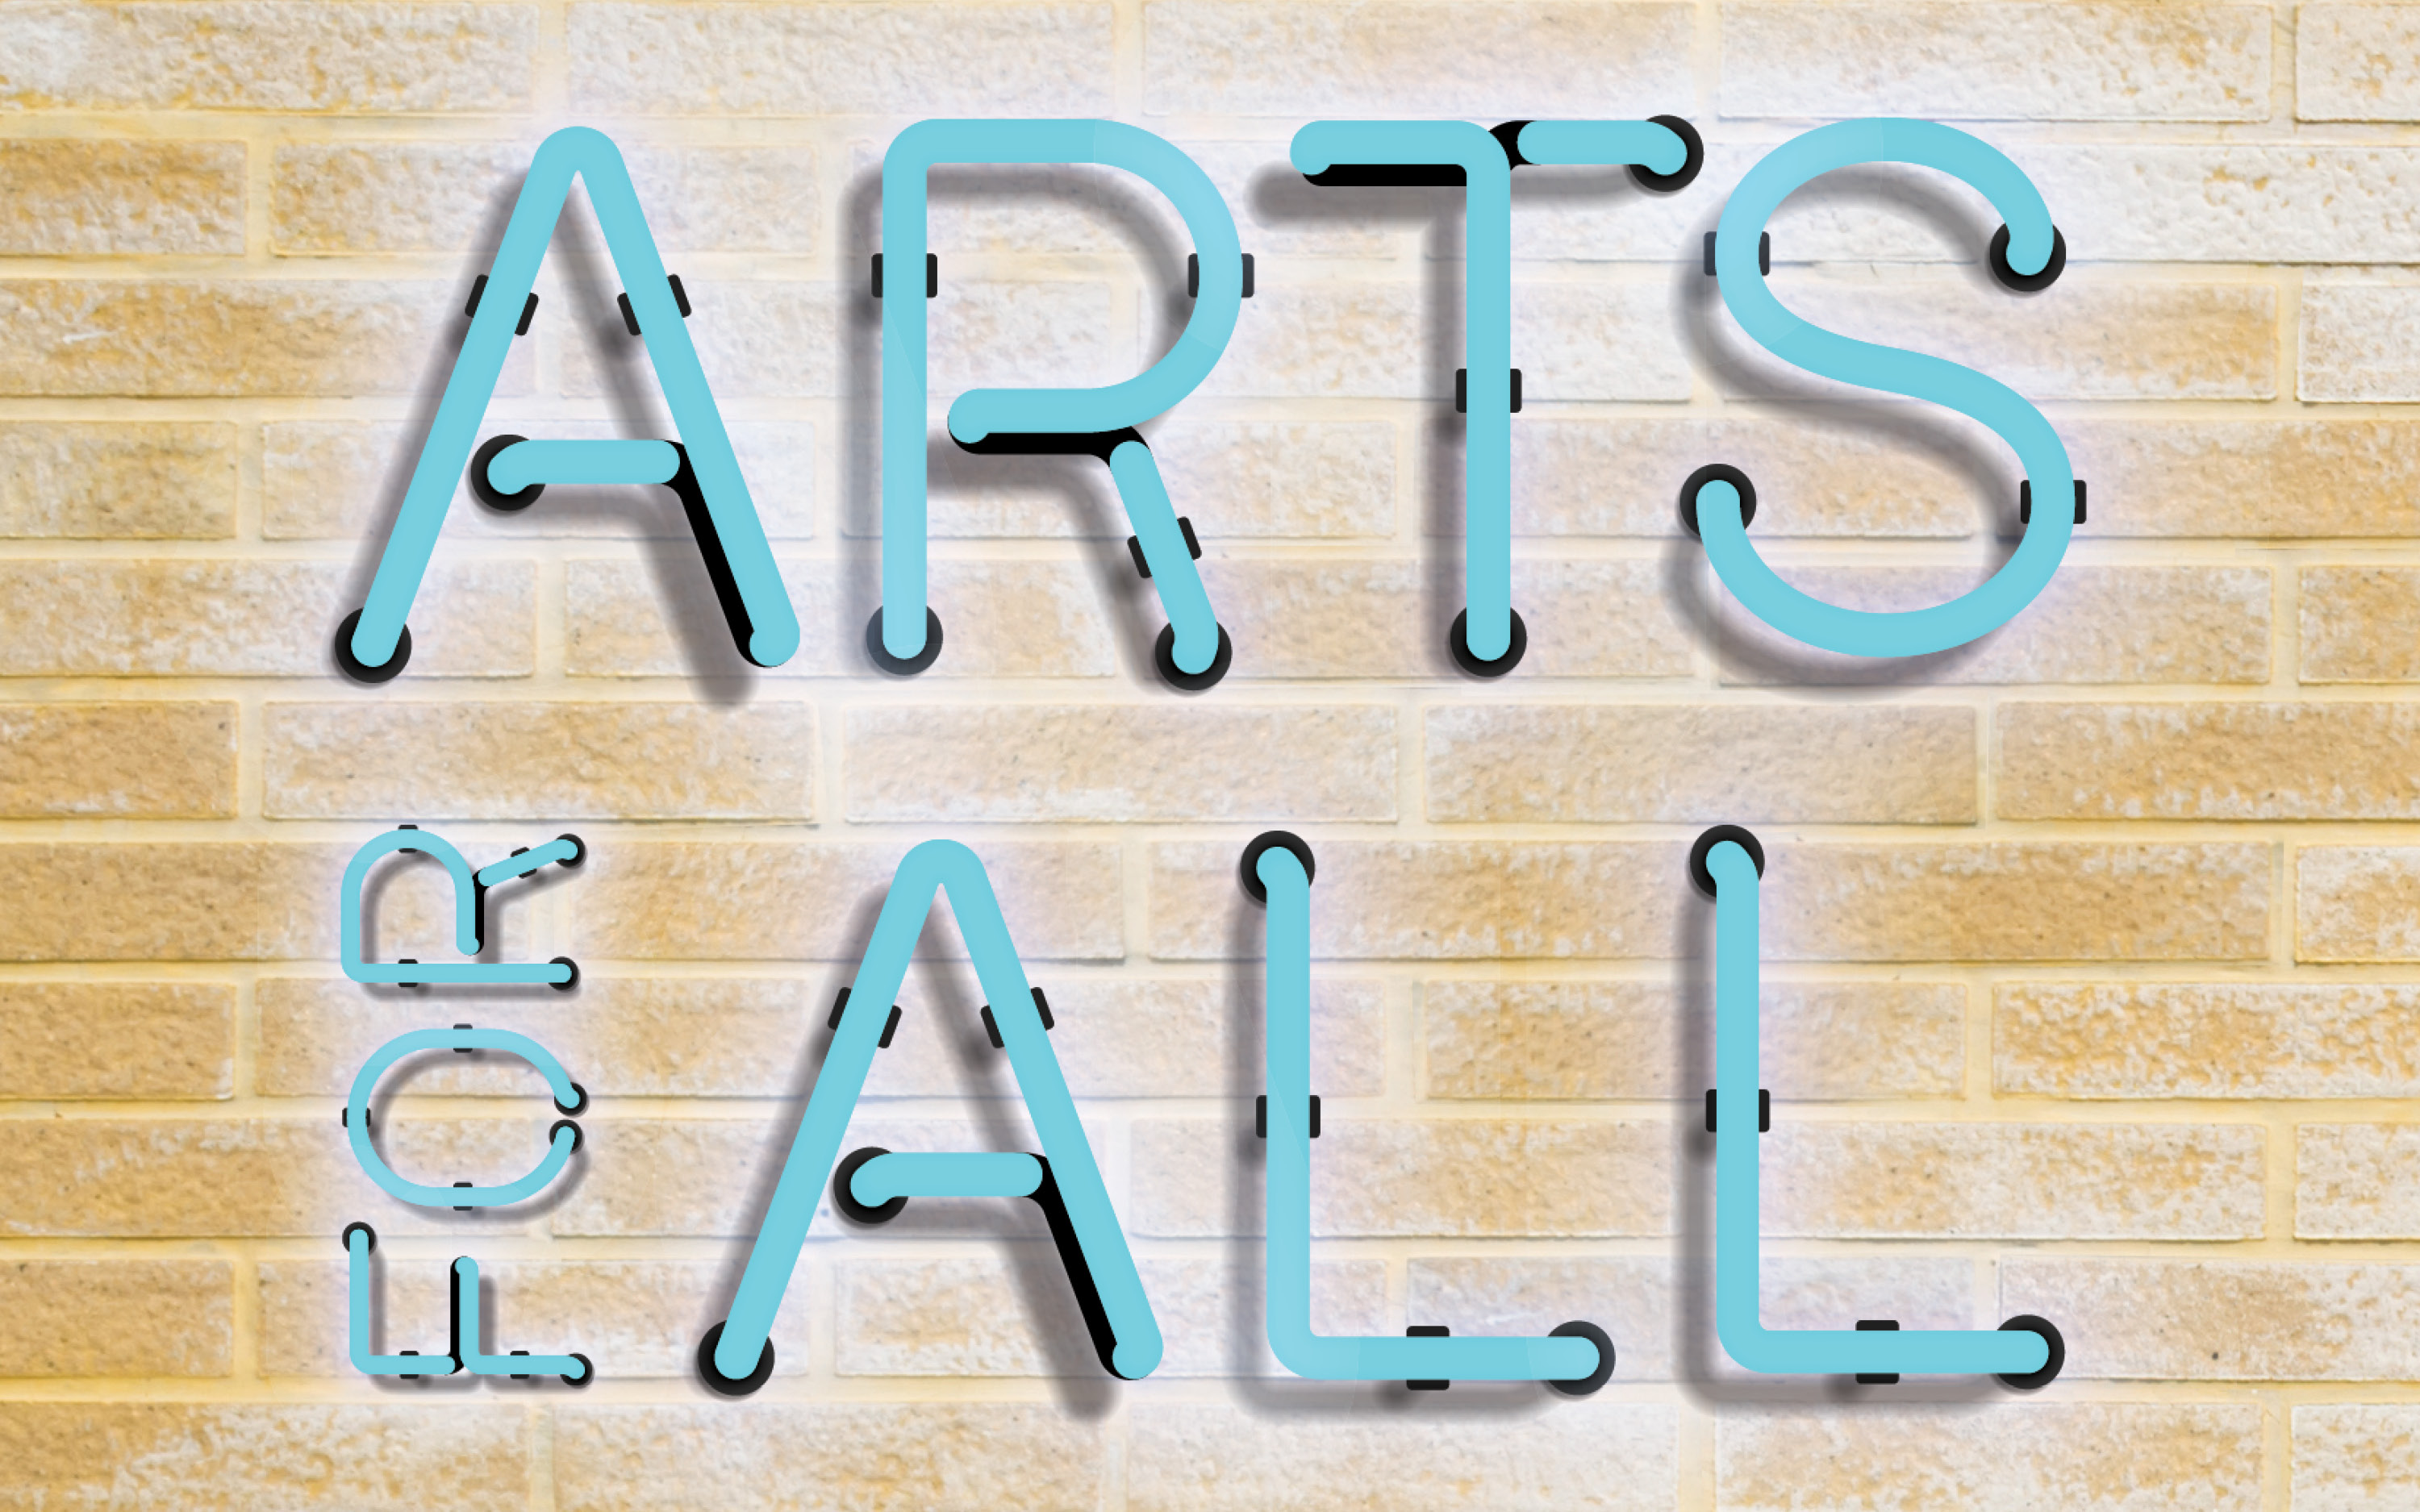 2017 Delaware Arts Summit: Arts for ALL! <br>- Transforming Individuals & Communities